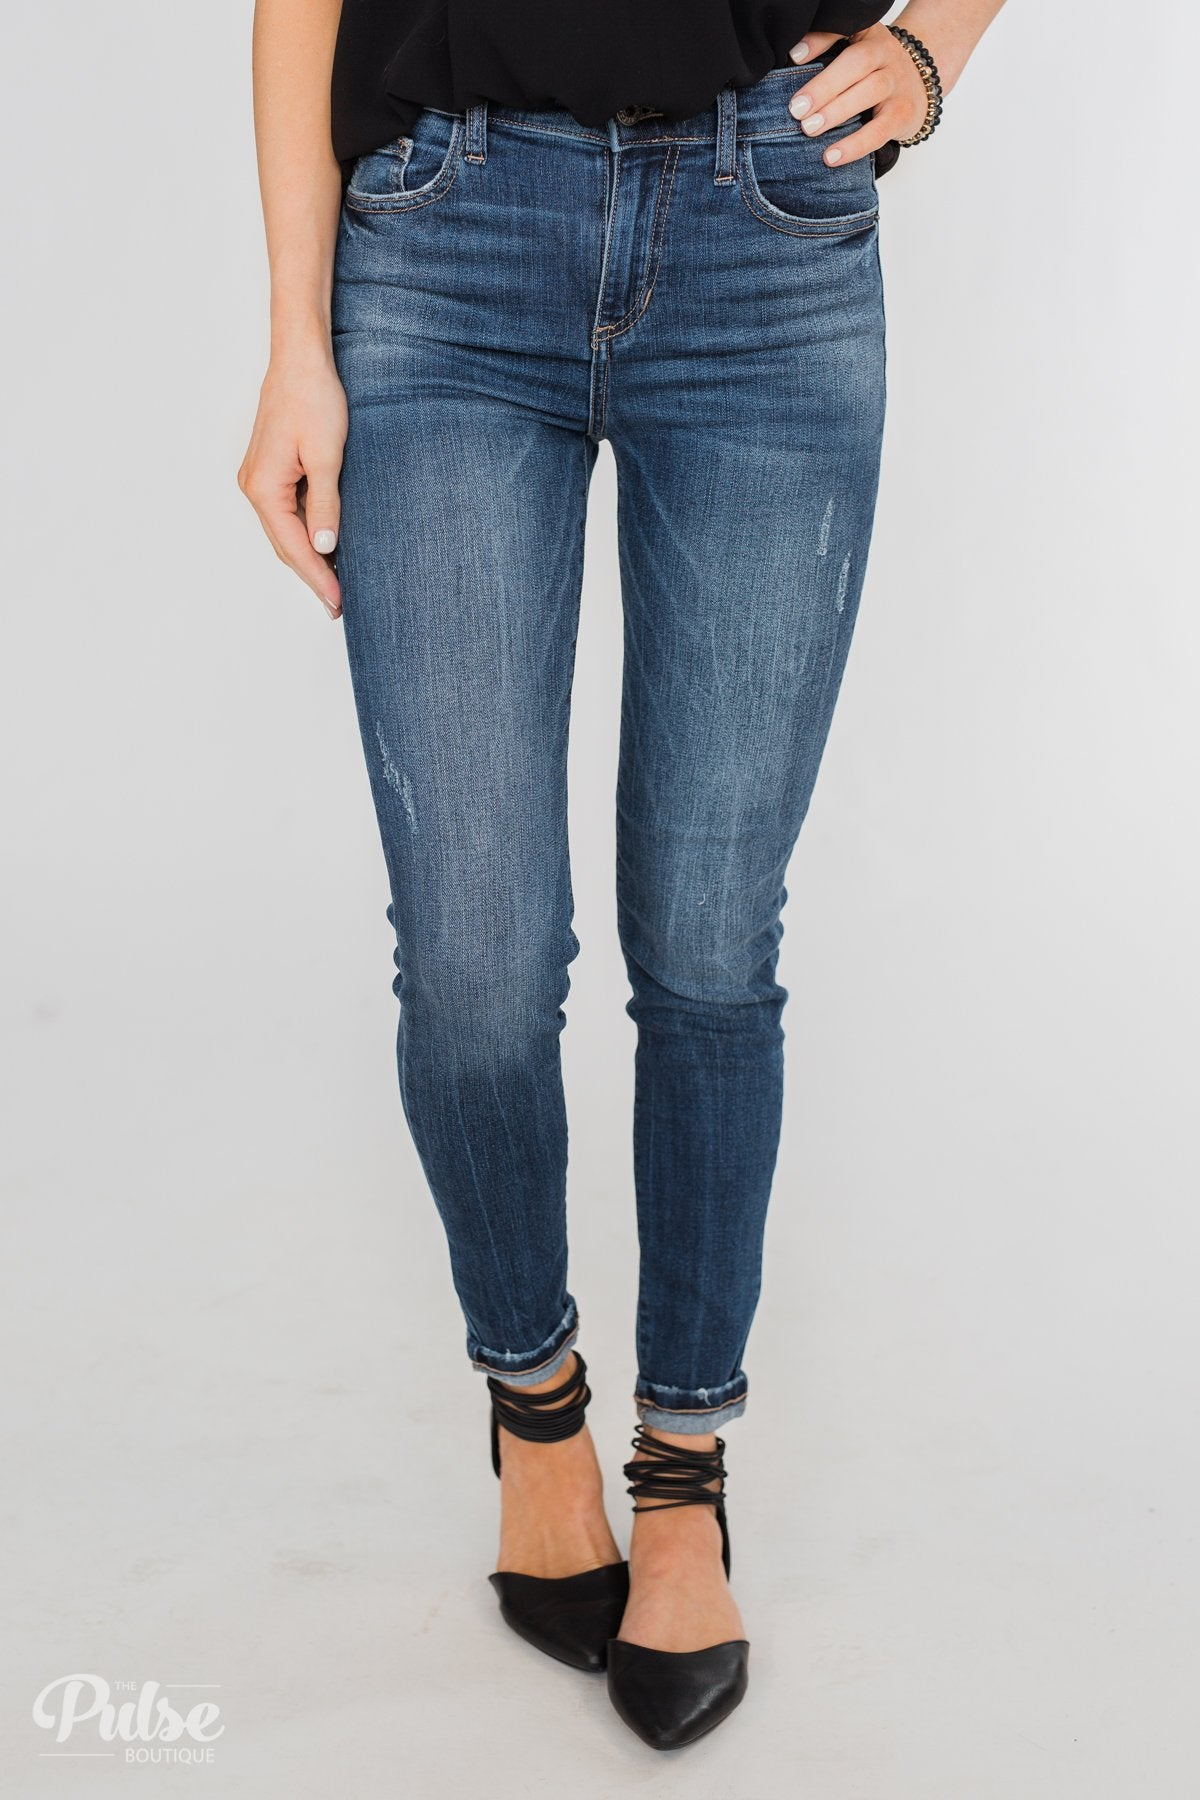 Sneak Peek Jeans- Lainey Wash